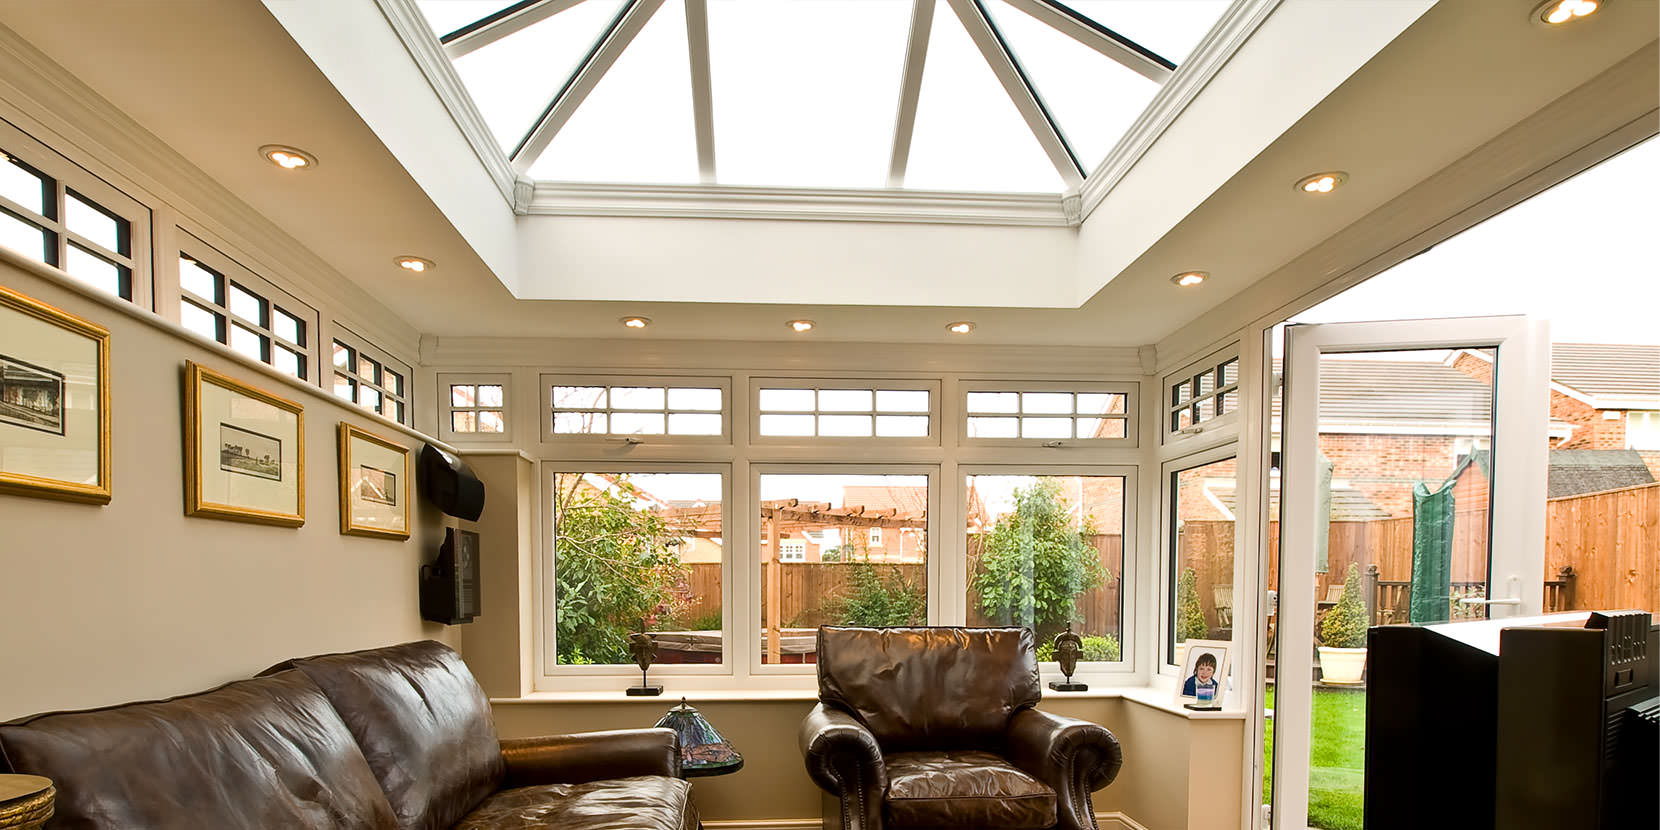 Orangeries harlow essex hertfordshire orangery designs for Orangery interior design ideas